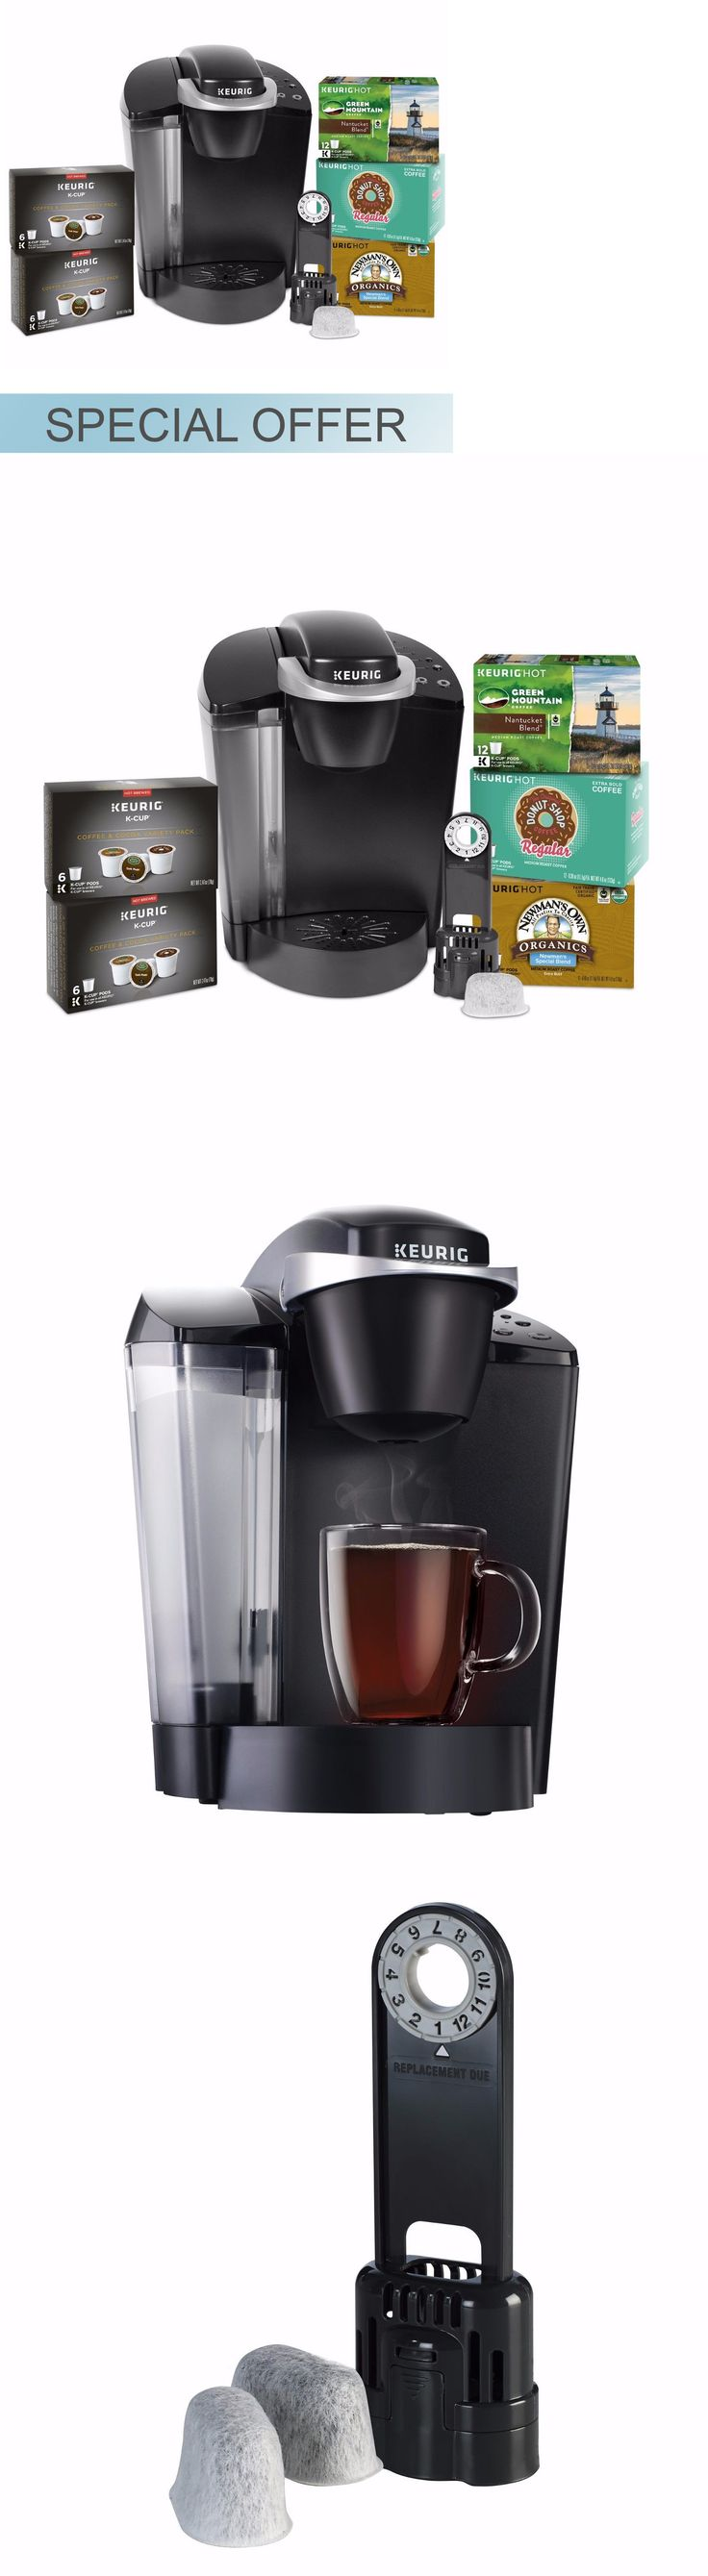 Single Serve Brewers 156775: Keurig K50b Single Serve Coffee Maker With 48 K-Cup Pods -> BUY IT NOW ONLY: $92.06 on eBay!